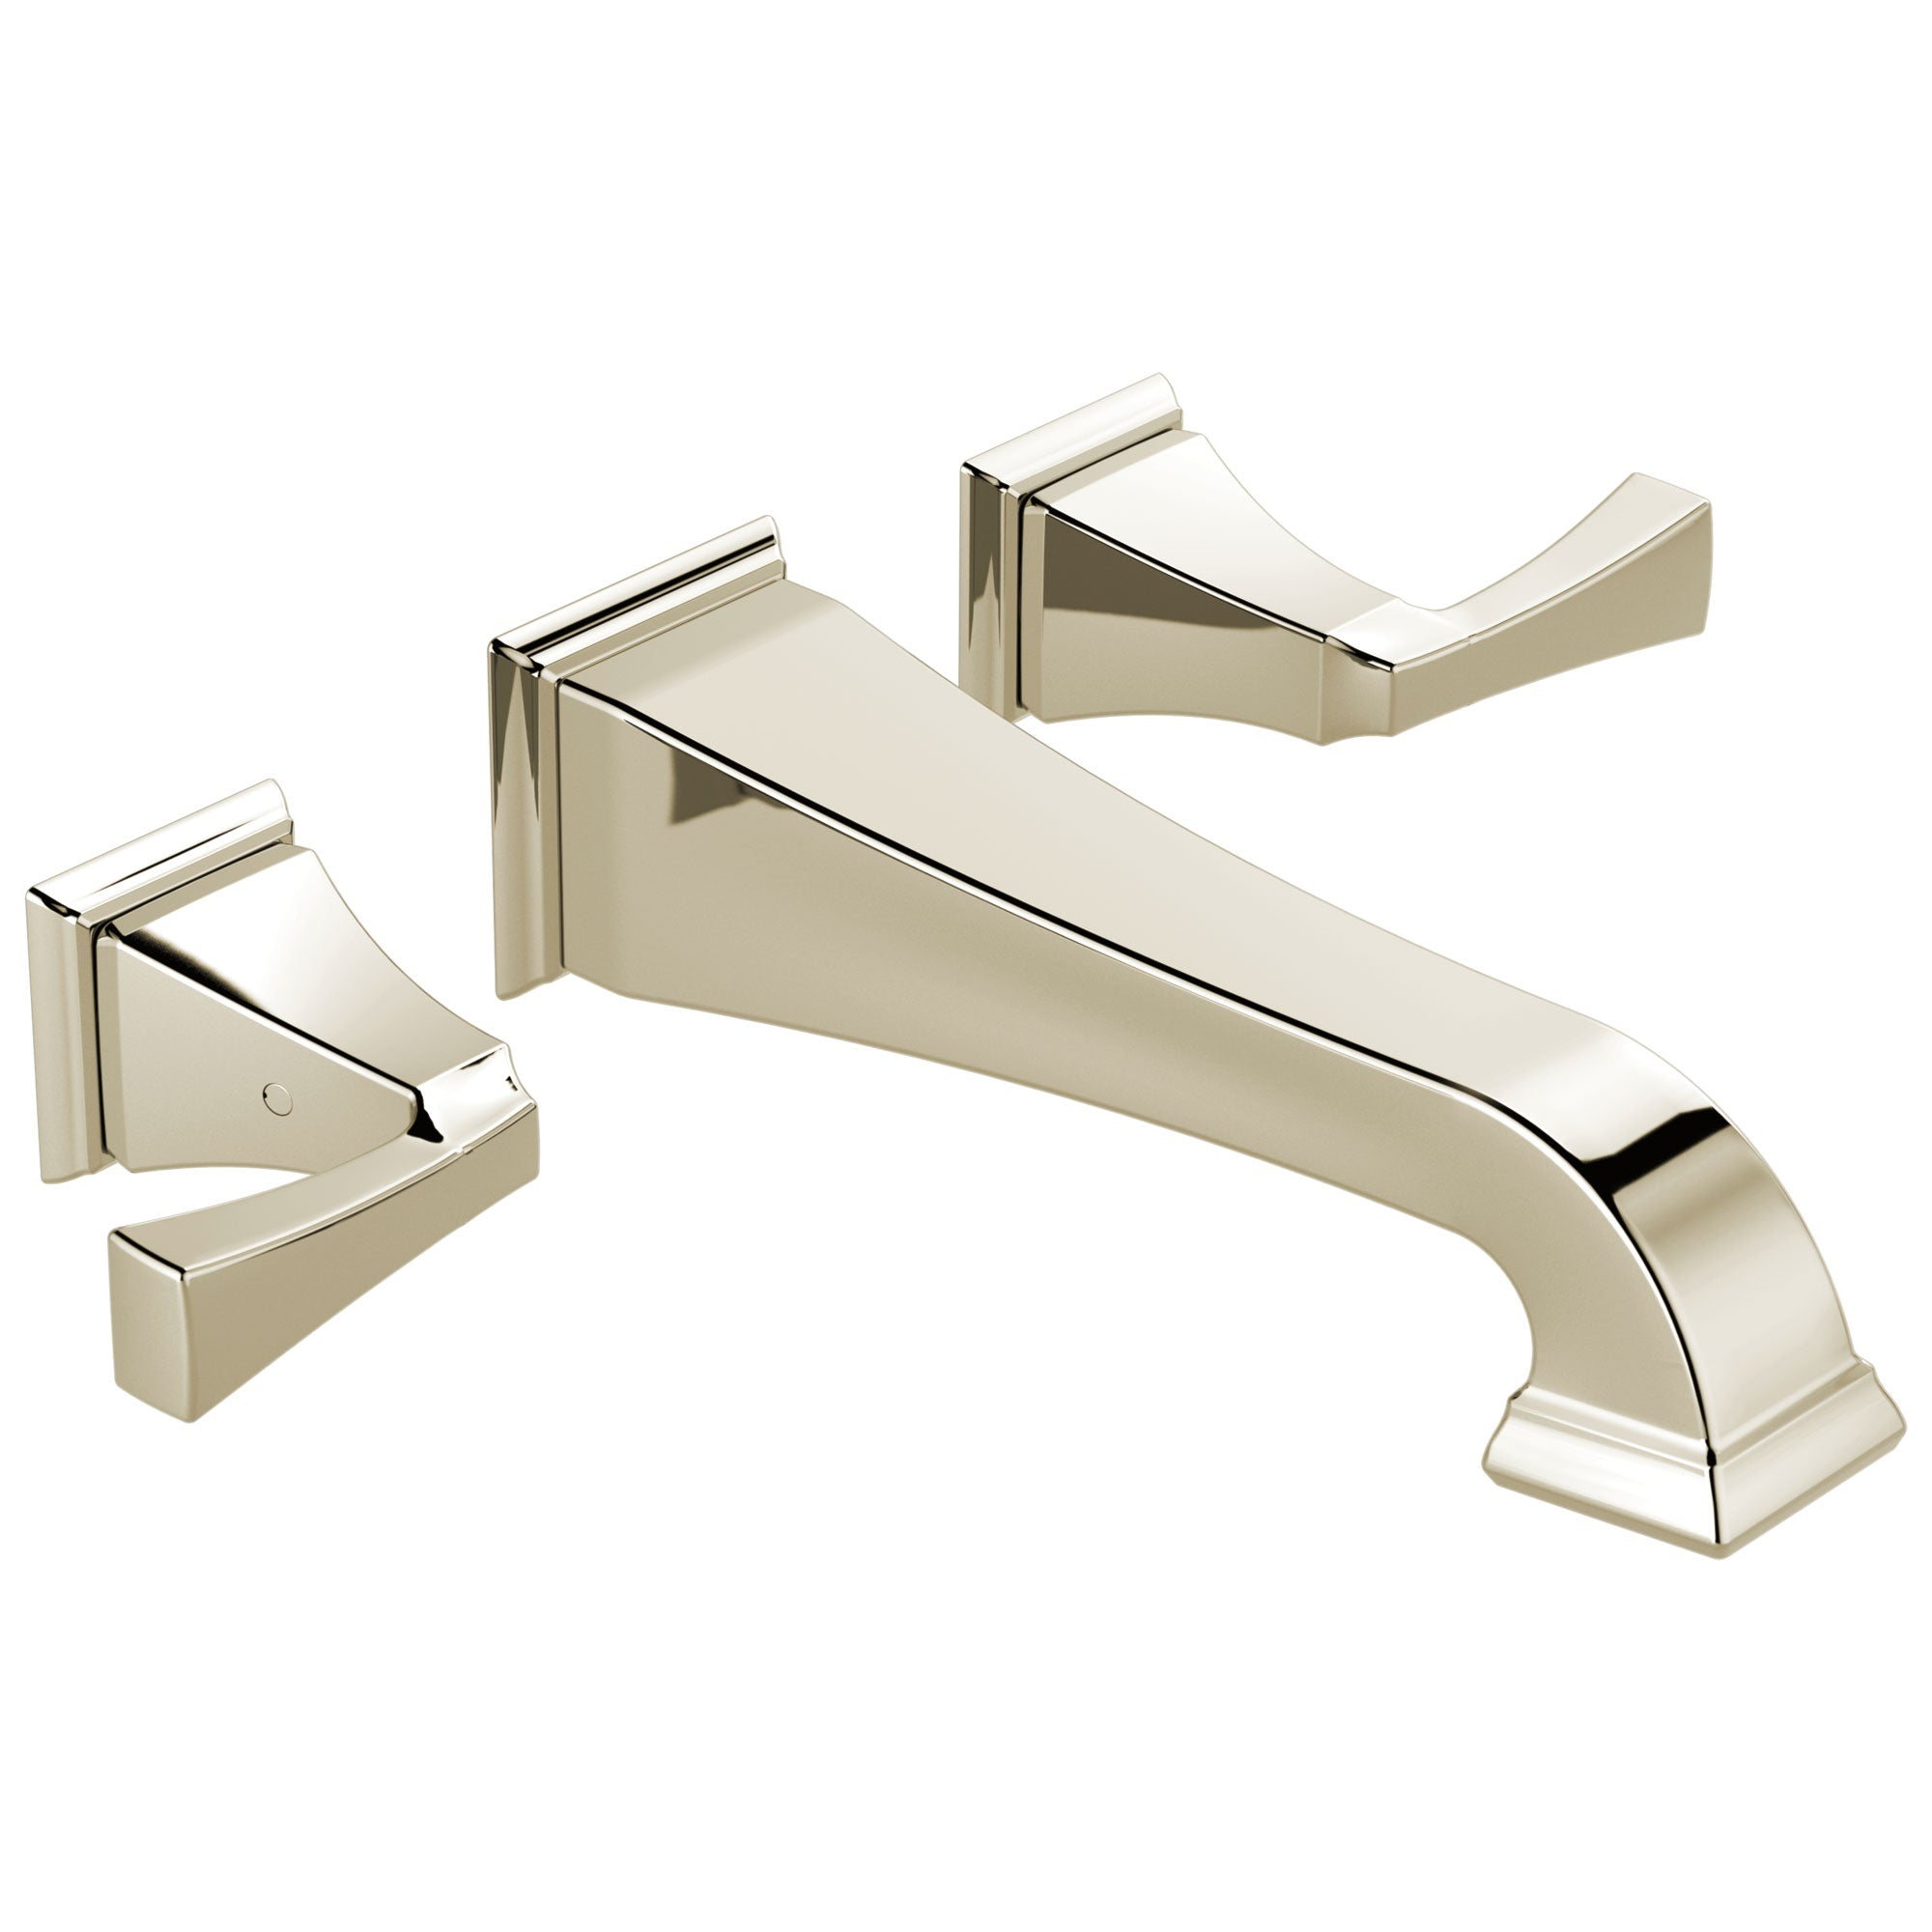 Delta Dryden Collection Polished Nickel Finish Two Handle Wall Mounted Bathroom Sink Lavatory Faucet Includes Rough-in Valve D2104V